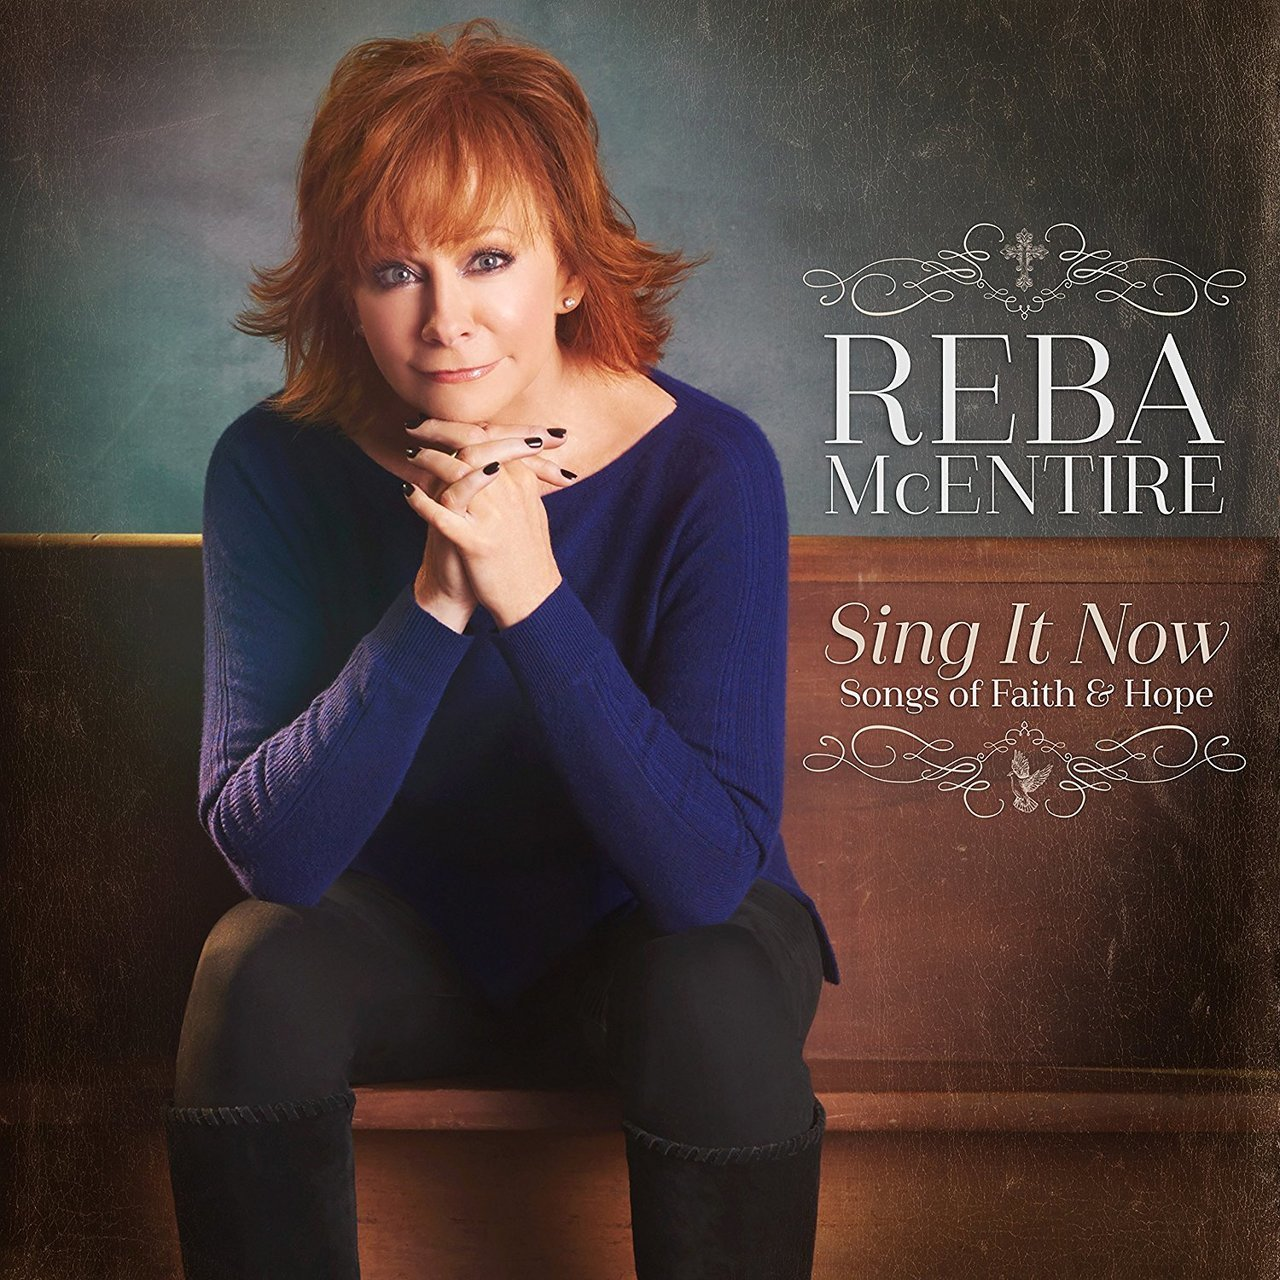 Sing it now songs of faith   hope by reba mcentire